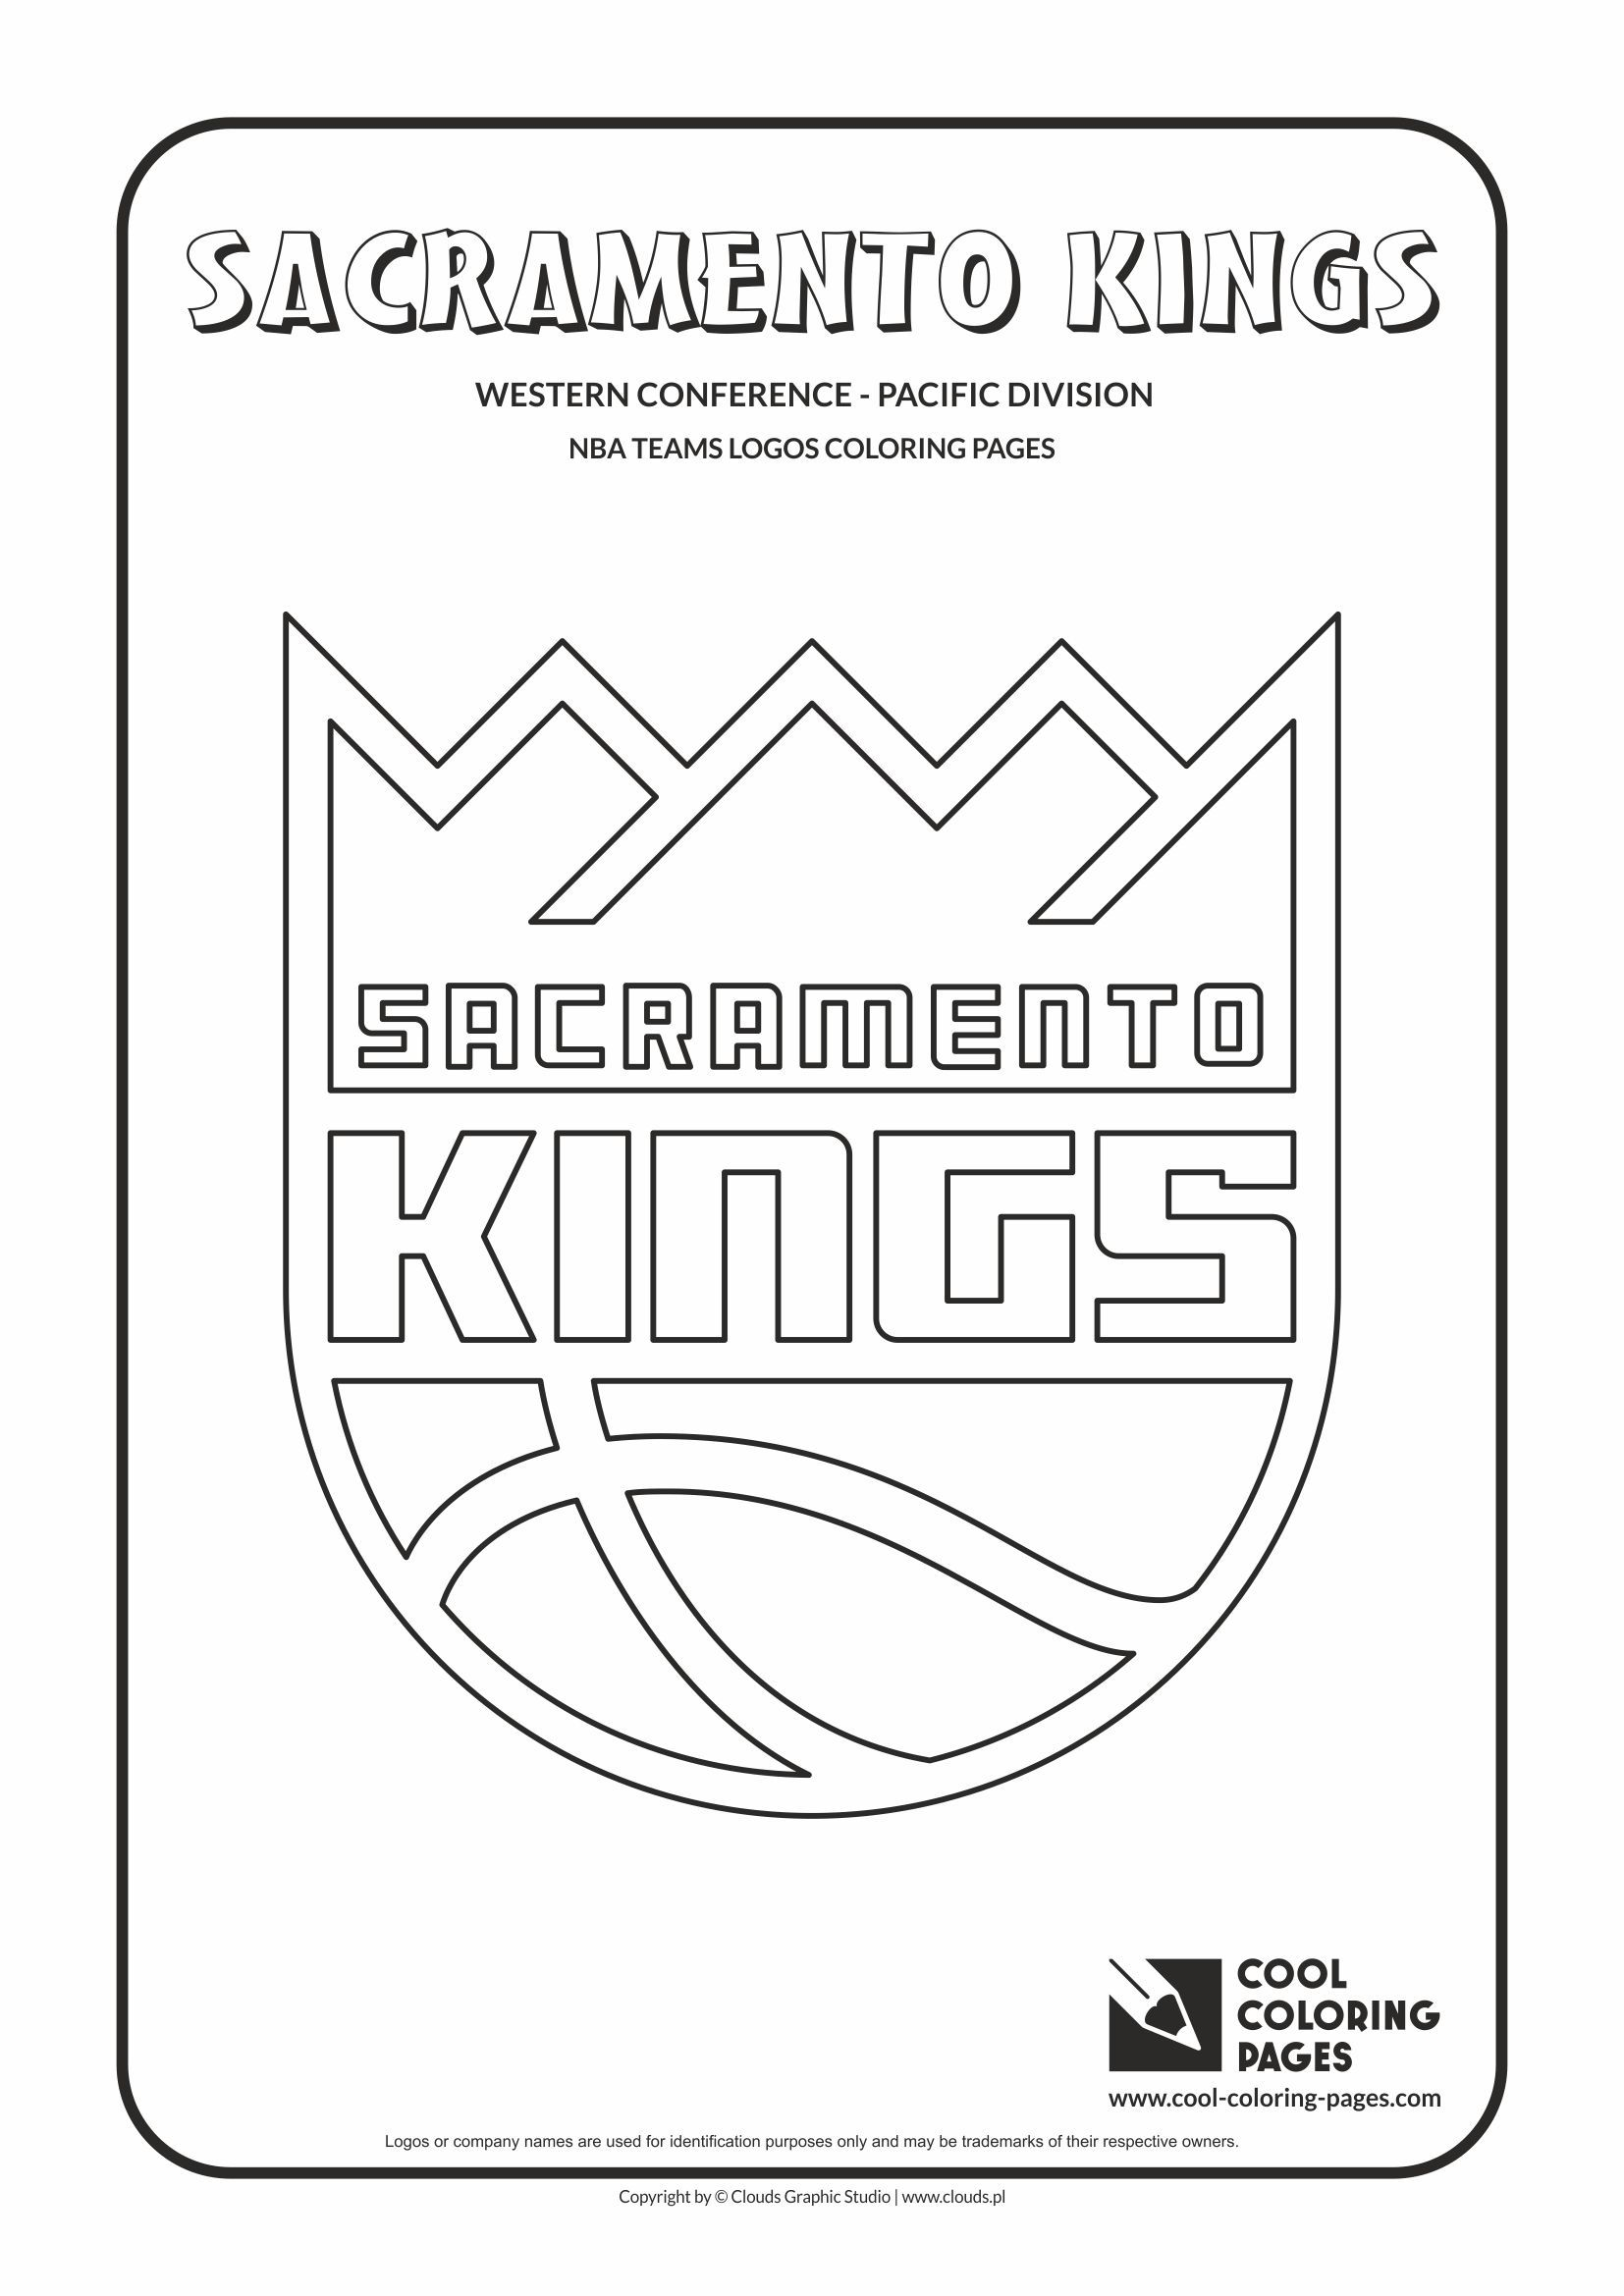 Sacramento Kings - NBA basketball teams logos coloring pages